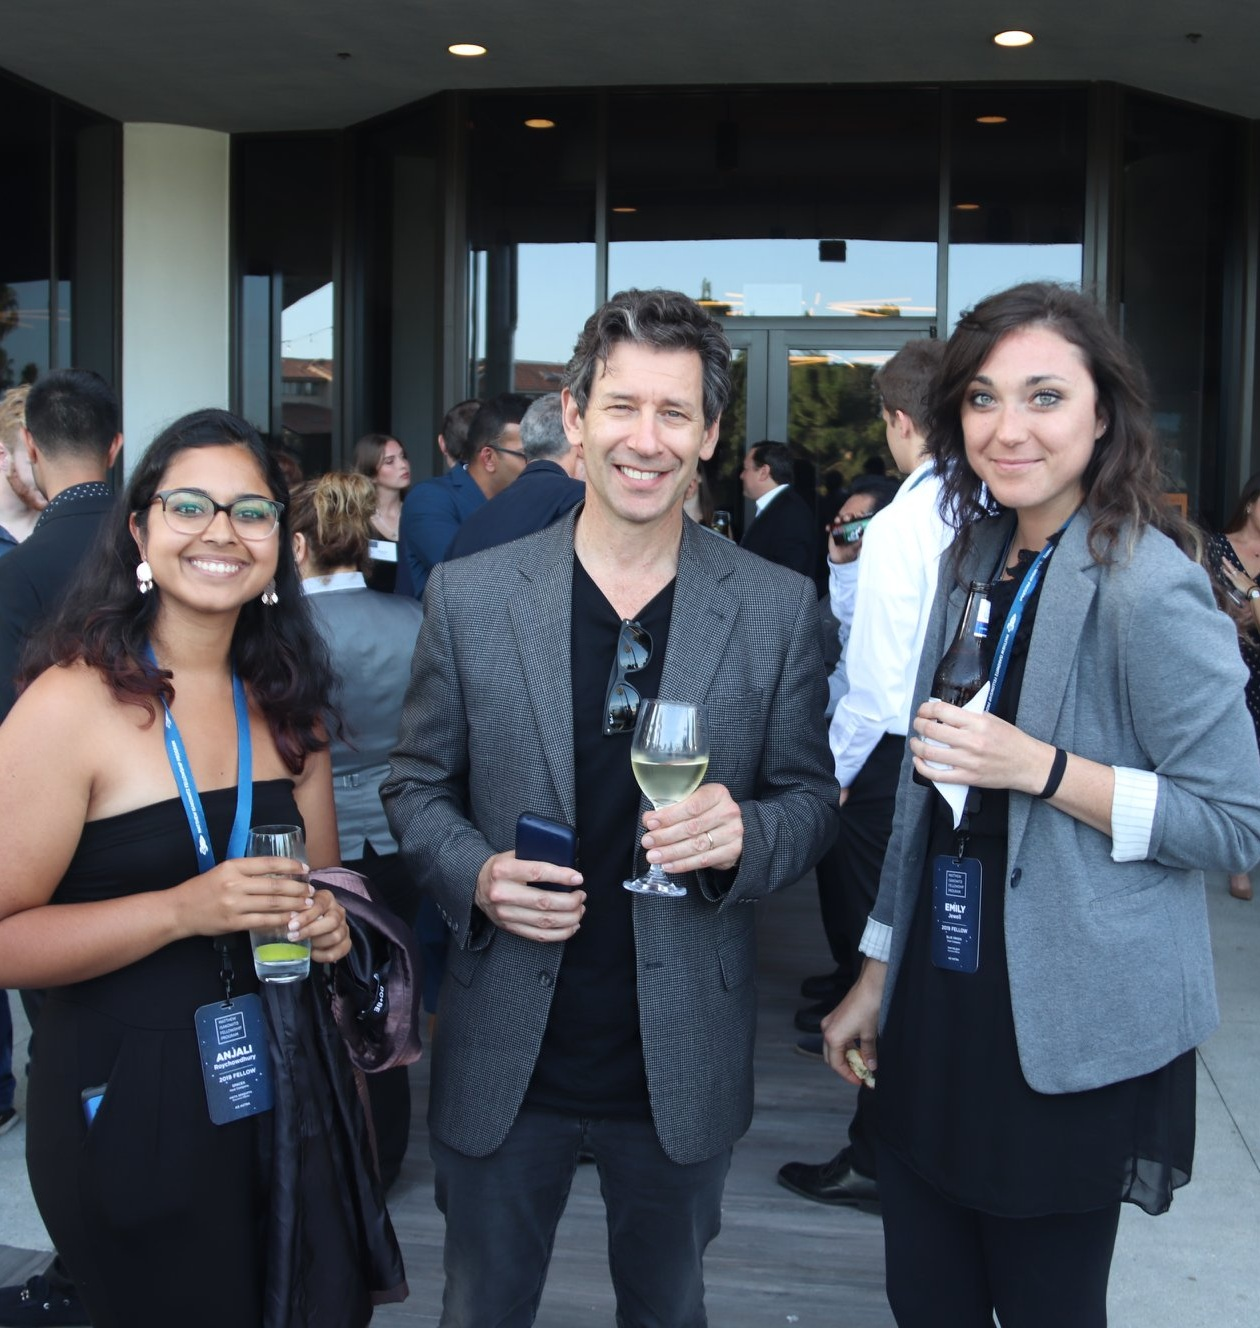 Fellows with Dan Hart (President and CEO, Virgin Orbit) at the 2019 Summit Reception.